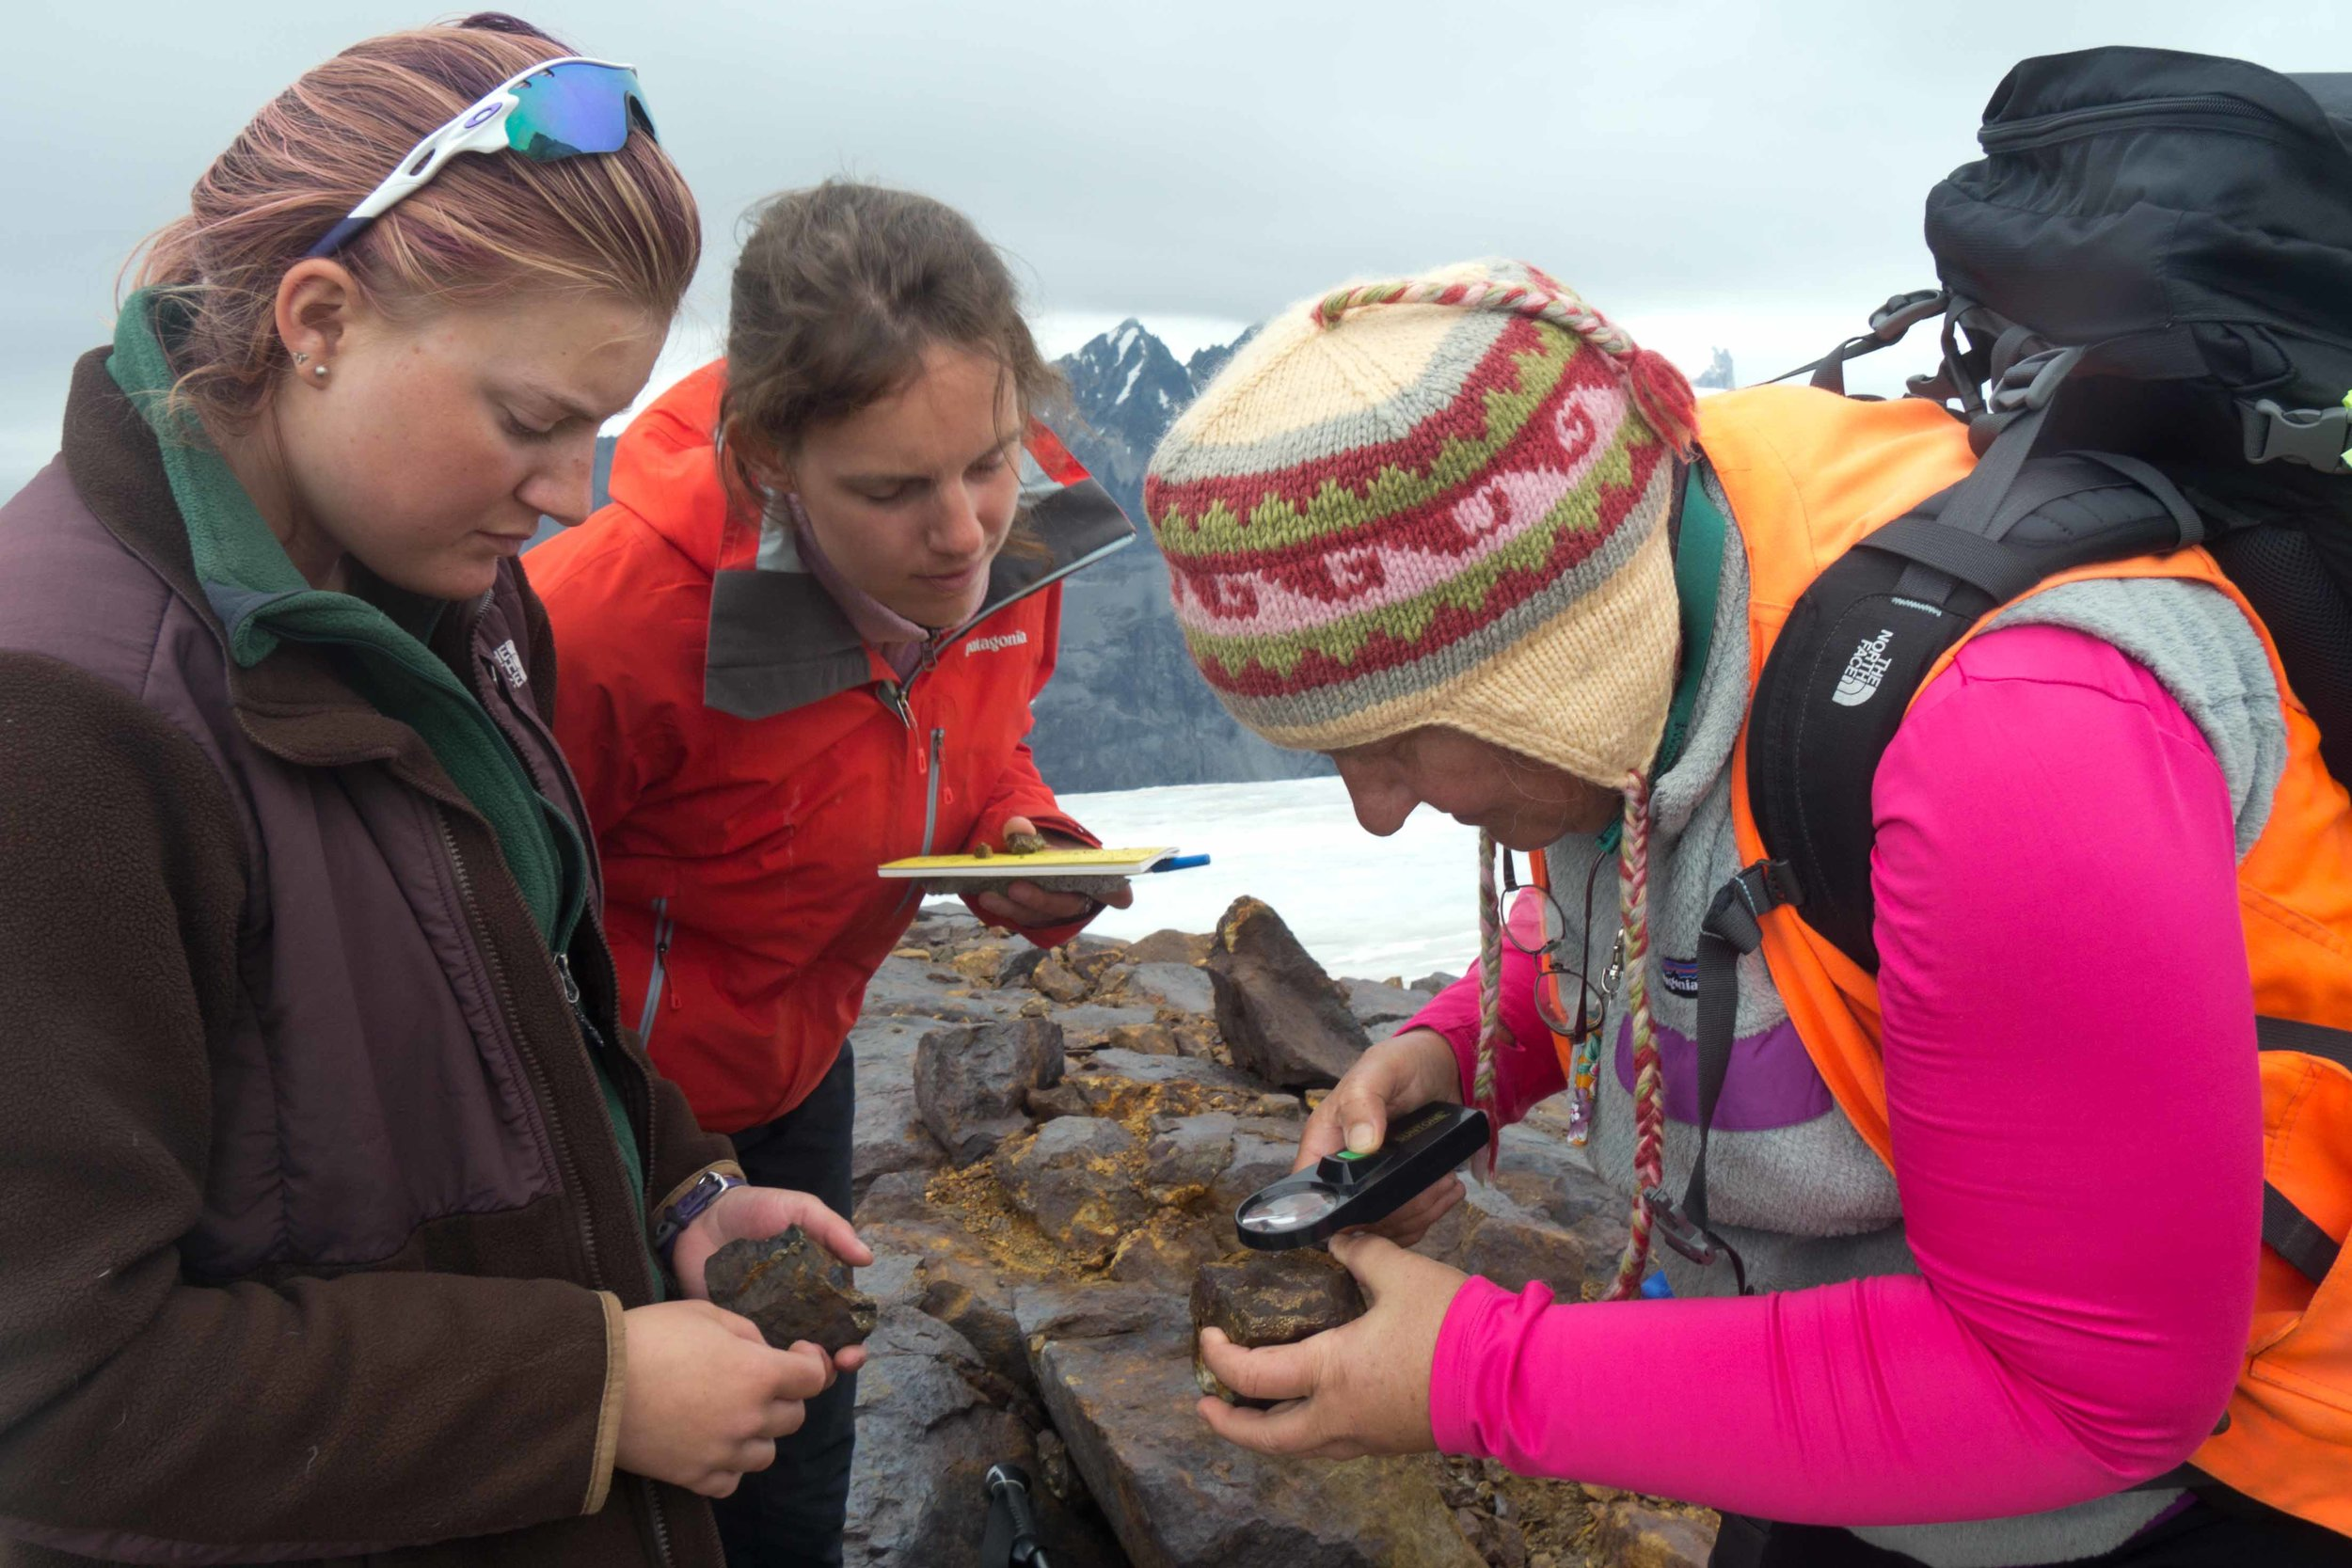 Dr. Cathy Connor leads a geology field outing on the Camp 18 nunatak. JIRP 2015. Photo: M. Beedle.